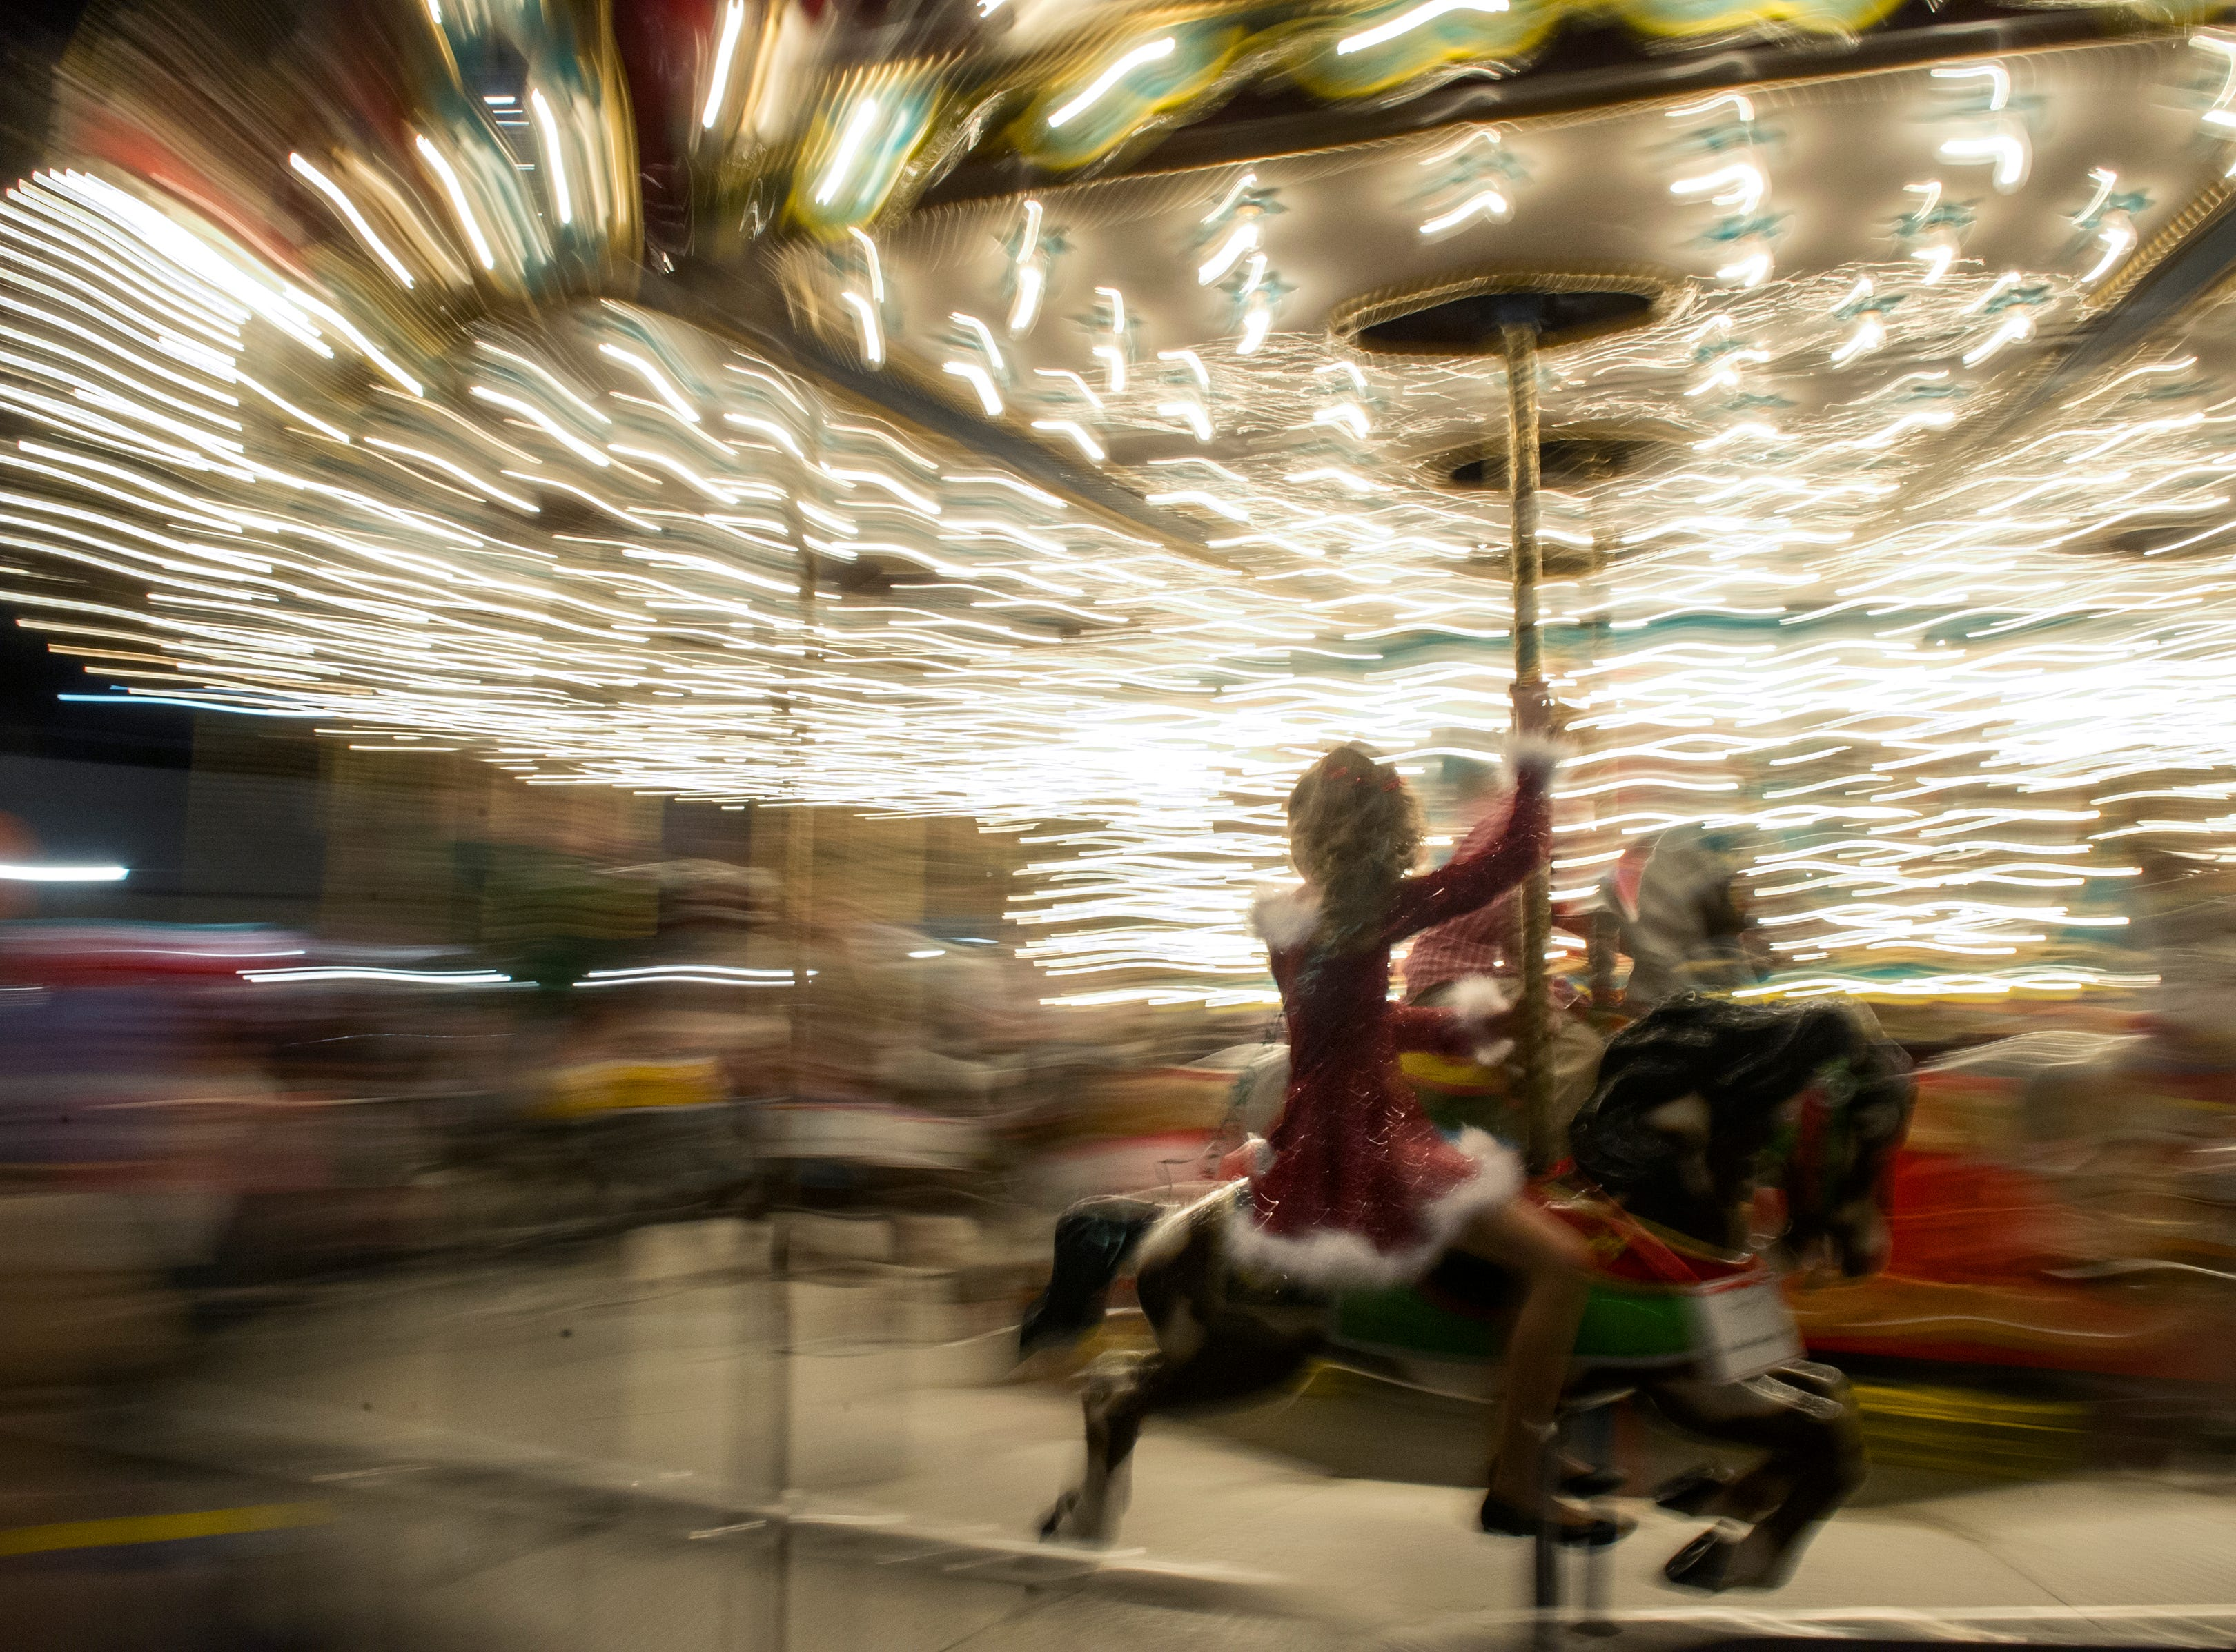 A girl dressed in Christmas attire rides the carousel during the Fantasy of Trees at the Knoxville Convention Center Wednesday, Nov. 25, 2015. (JESSICA TEZAK/NEWS SENTINEL)